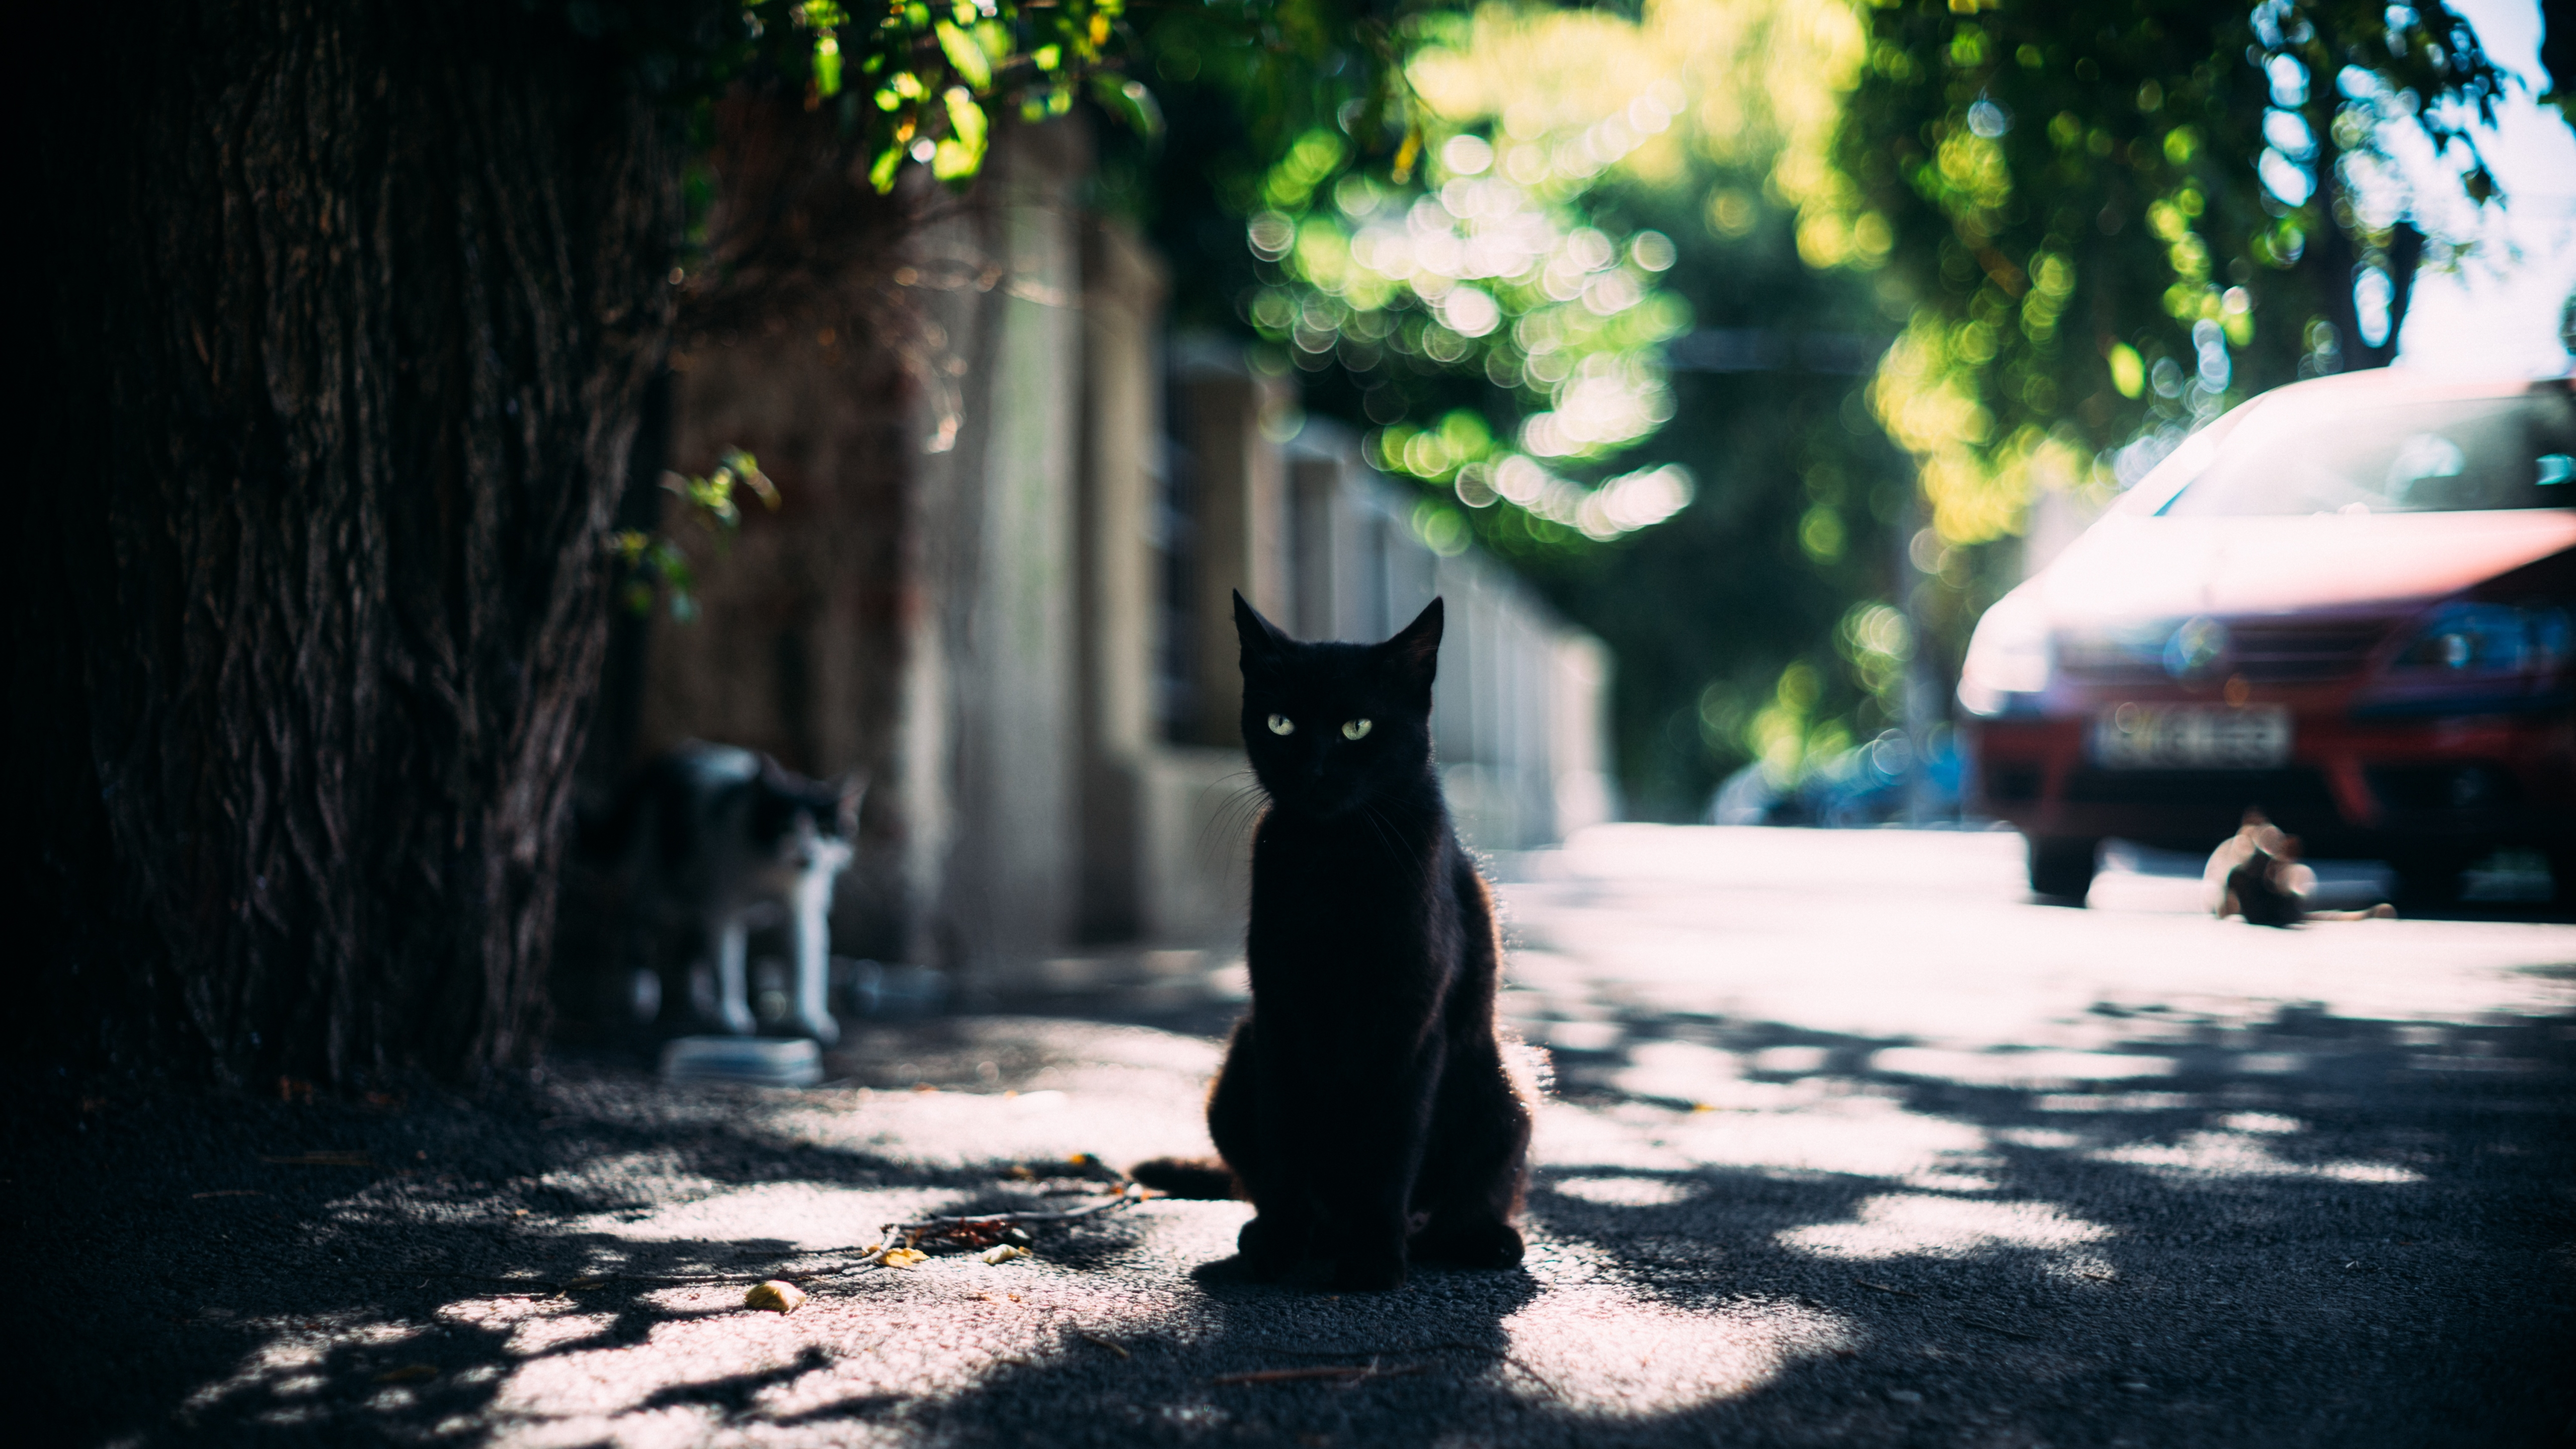 5120x2880 Black Cat Candid Portrait 5k Wallpaper Hd Animals 4k Wallpapers Images Photos And Background